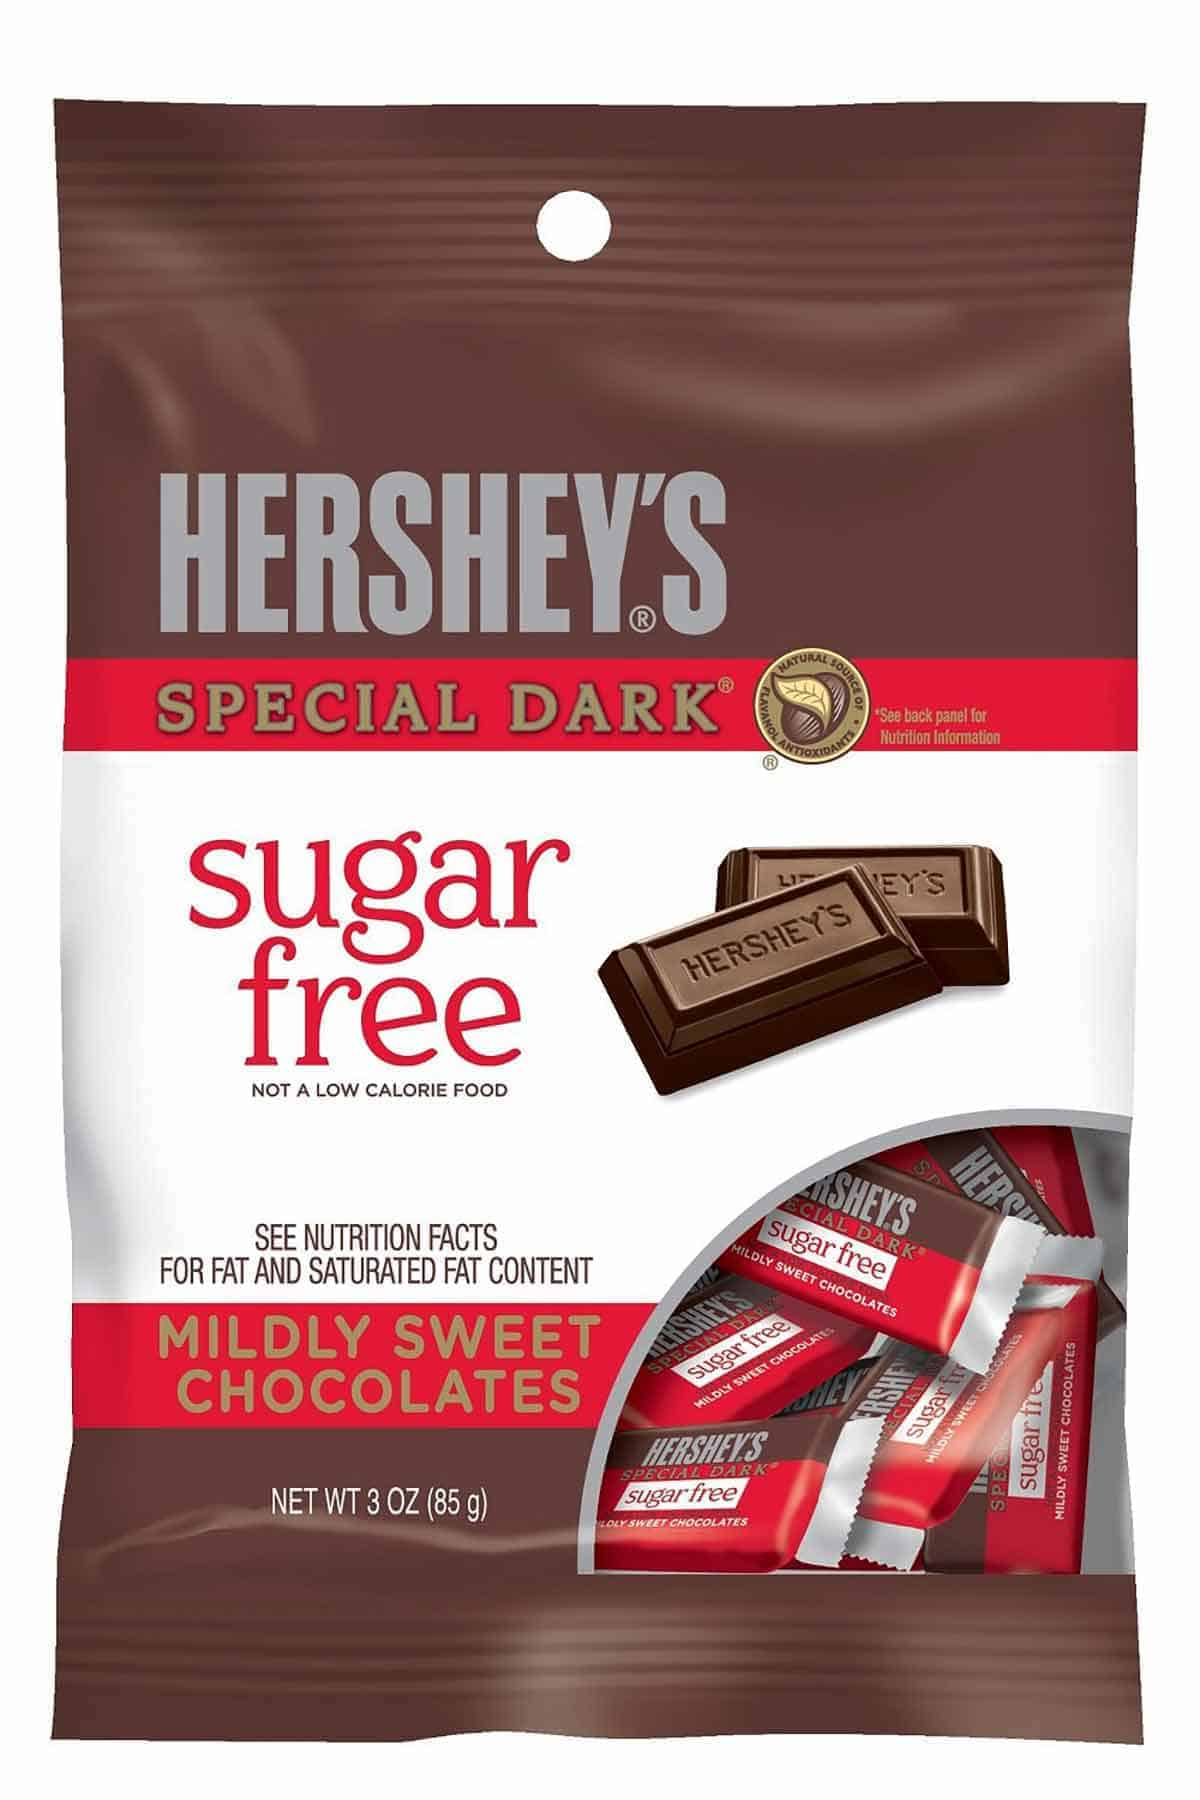 A bag of Hershey's Special Dark sugar free chocolates